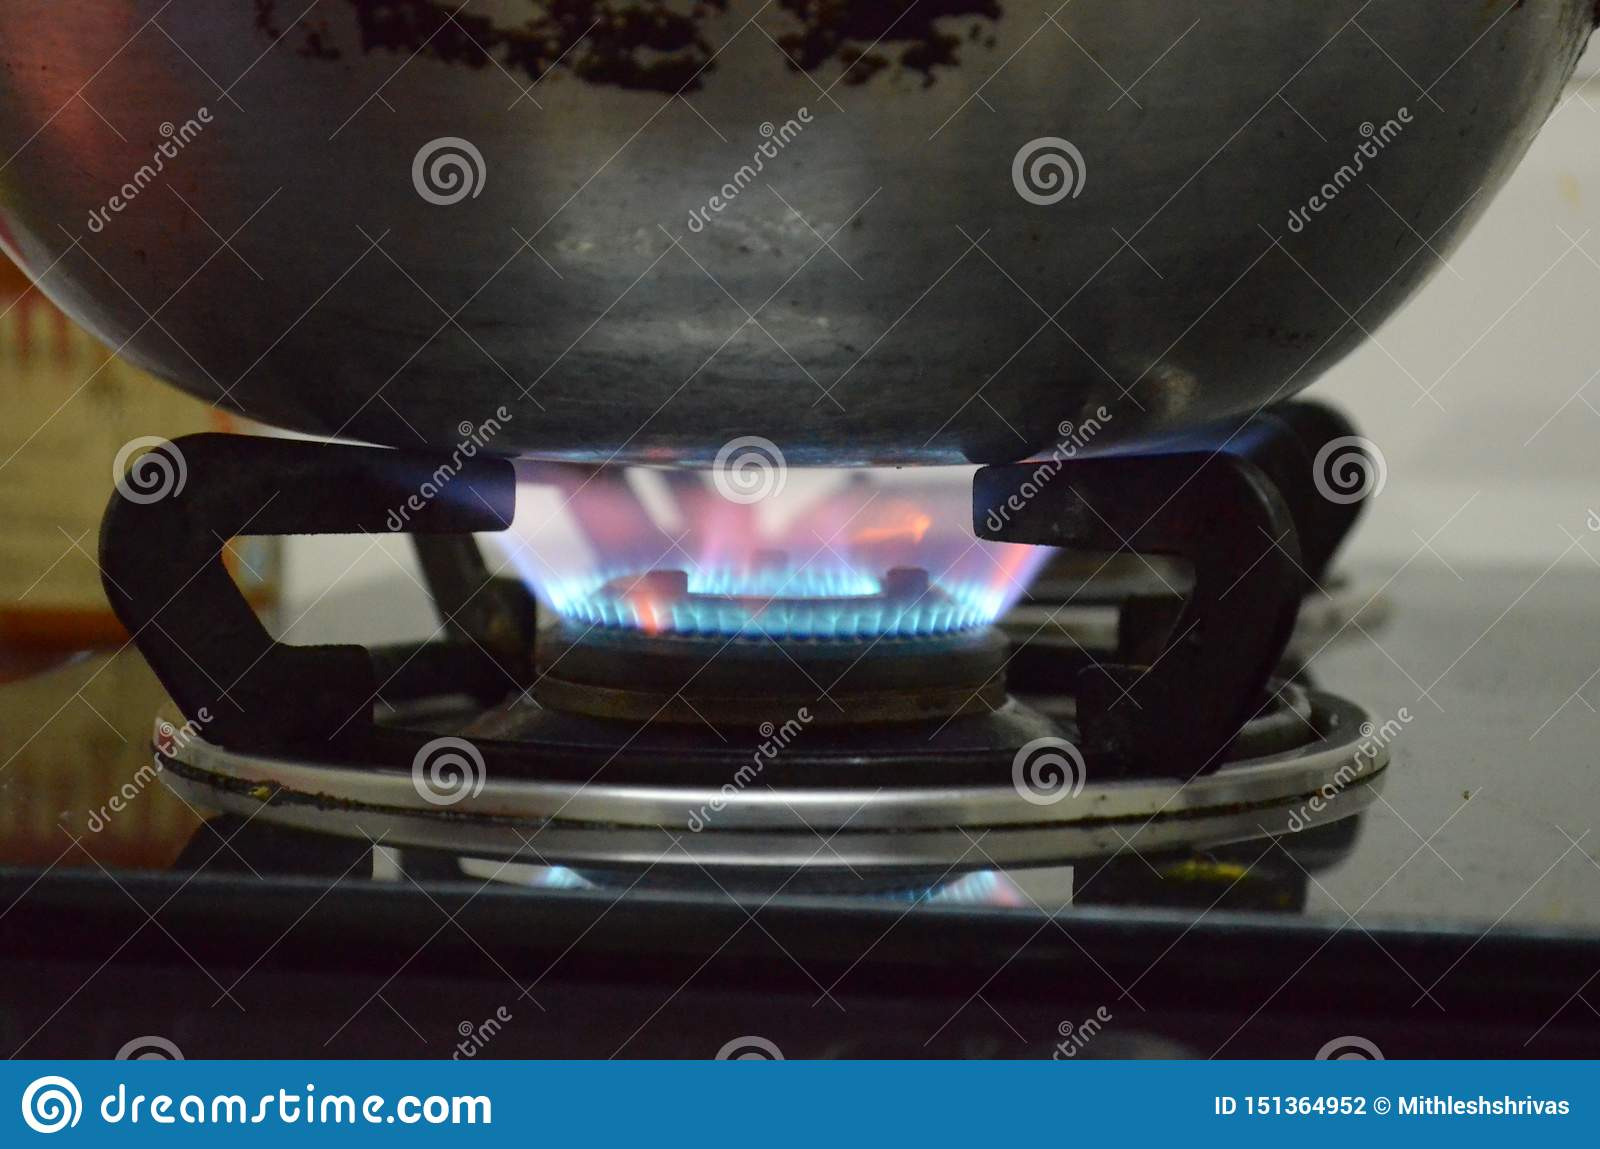 An Aluminium pan under the flames in gas stove; old style cooking